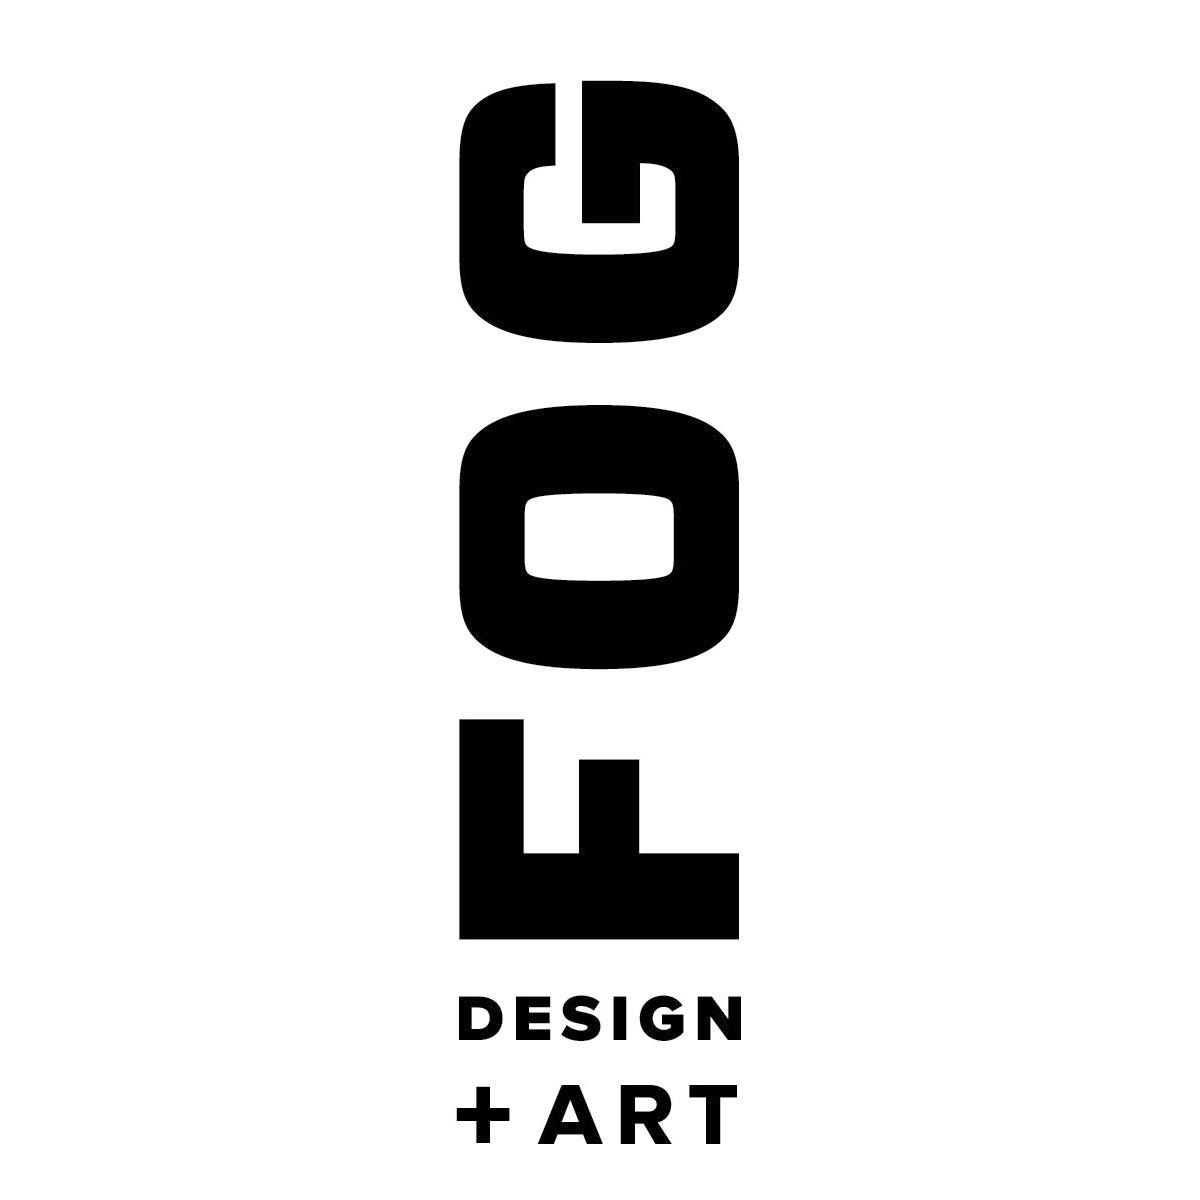 FOG Design+Art 2019